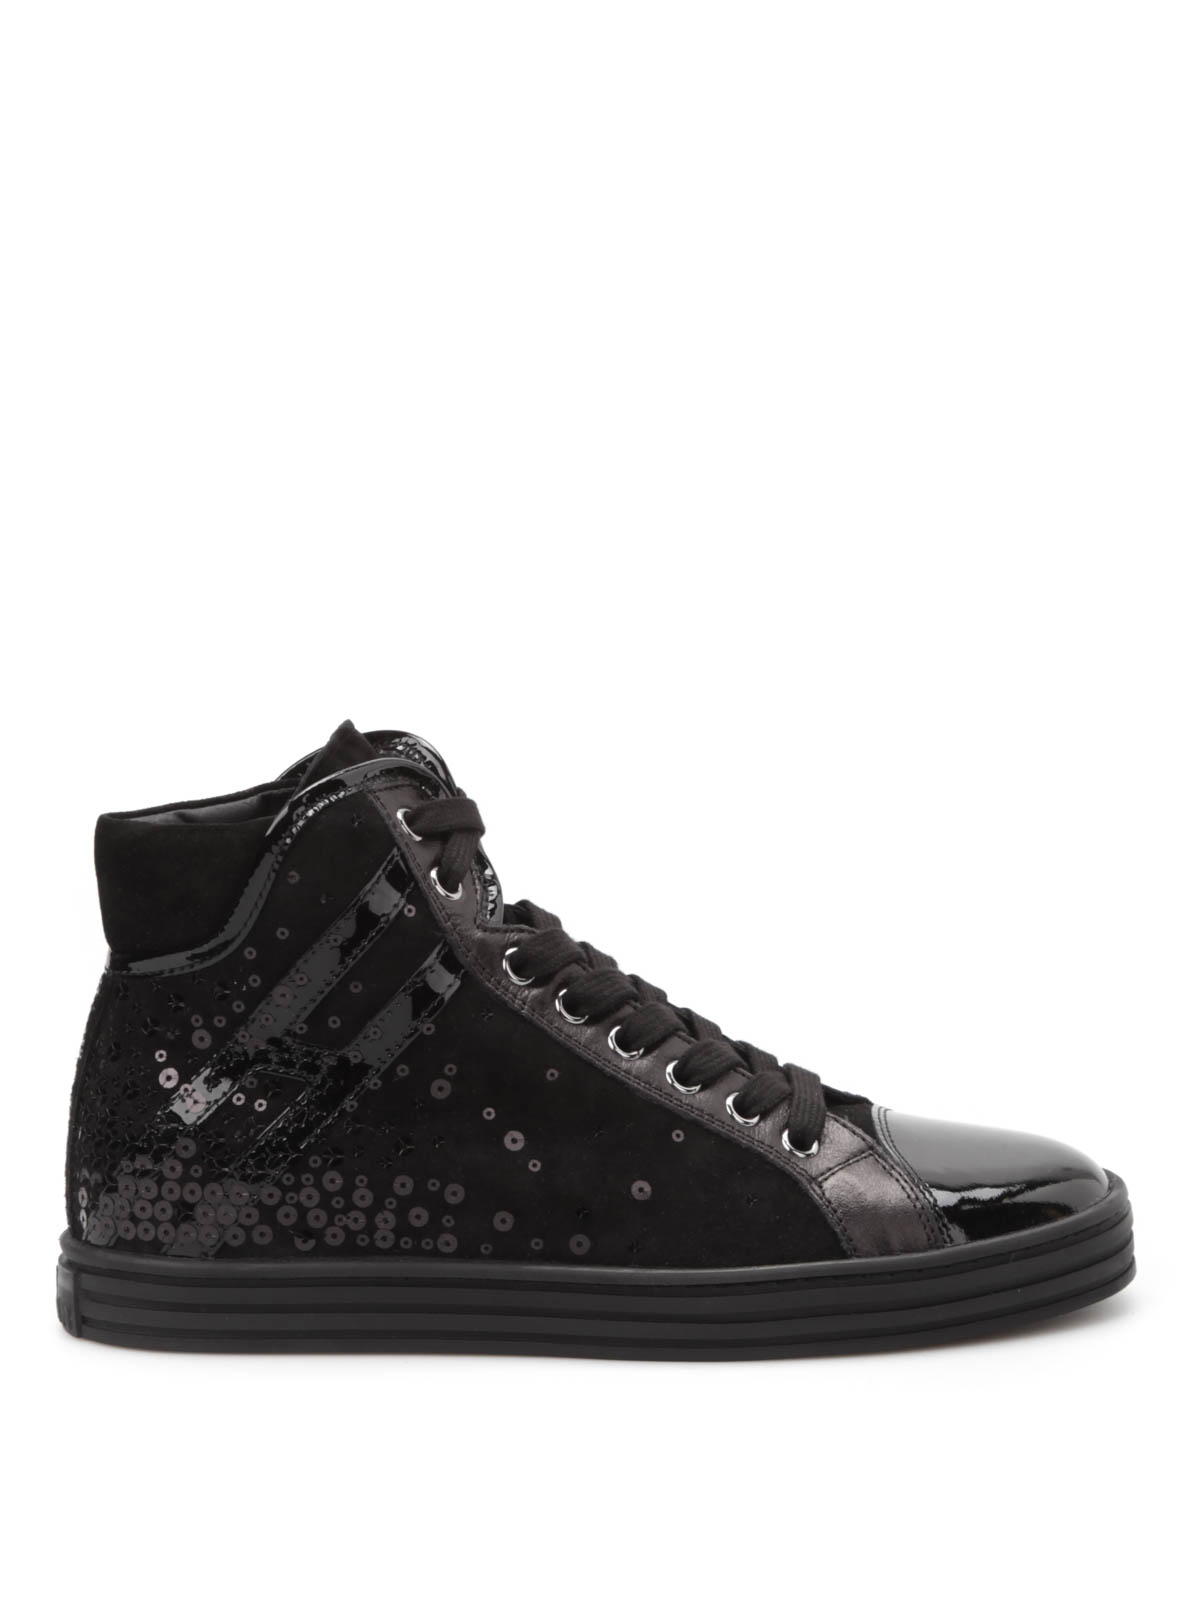 Trainers Hogan Rebel - R182 Paillettes high-top sneakers ...